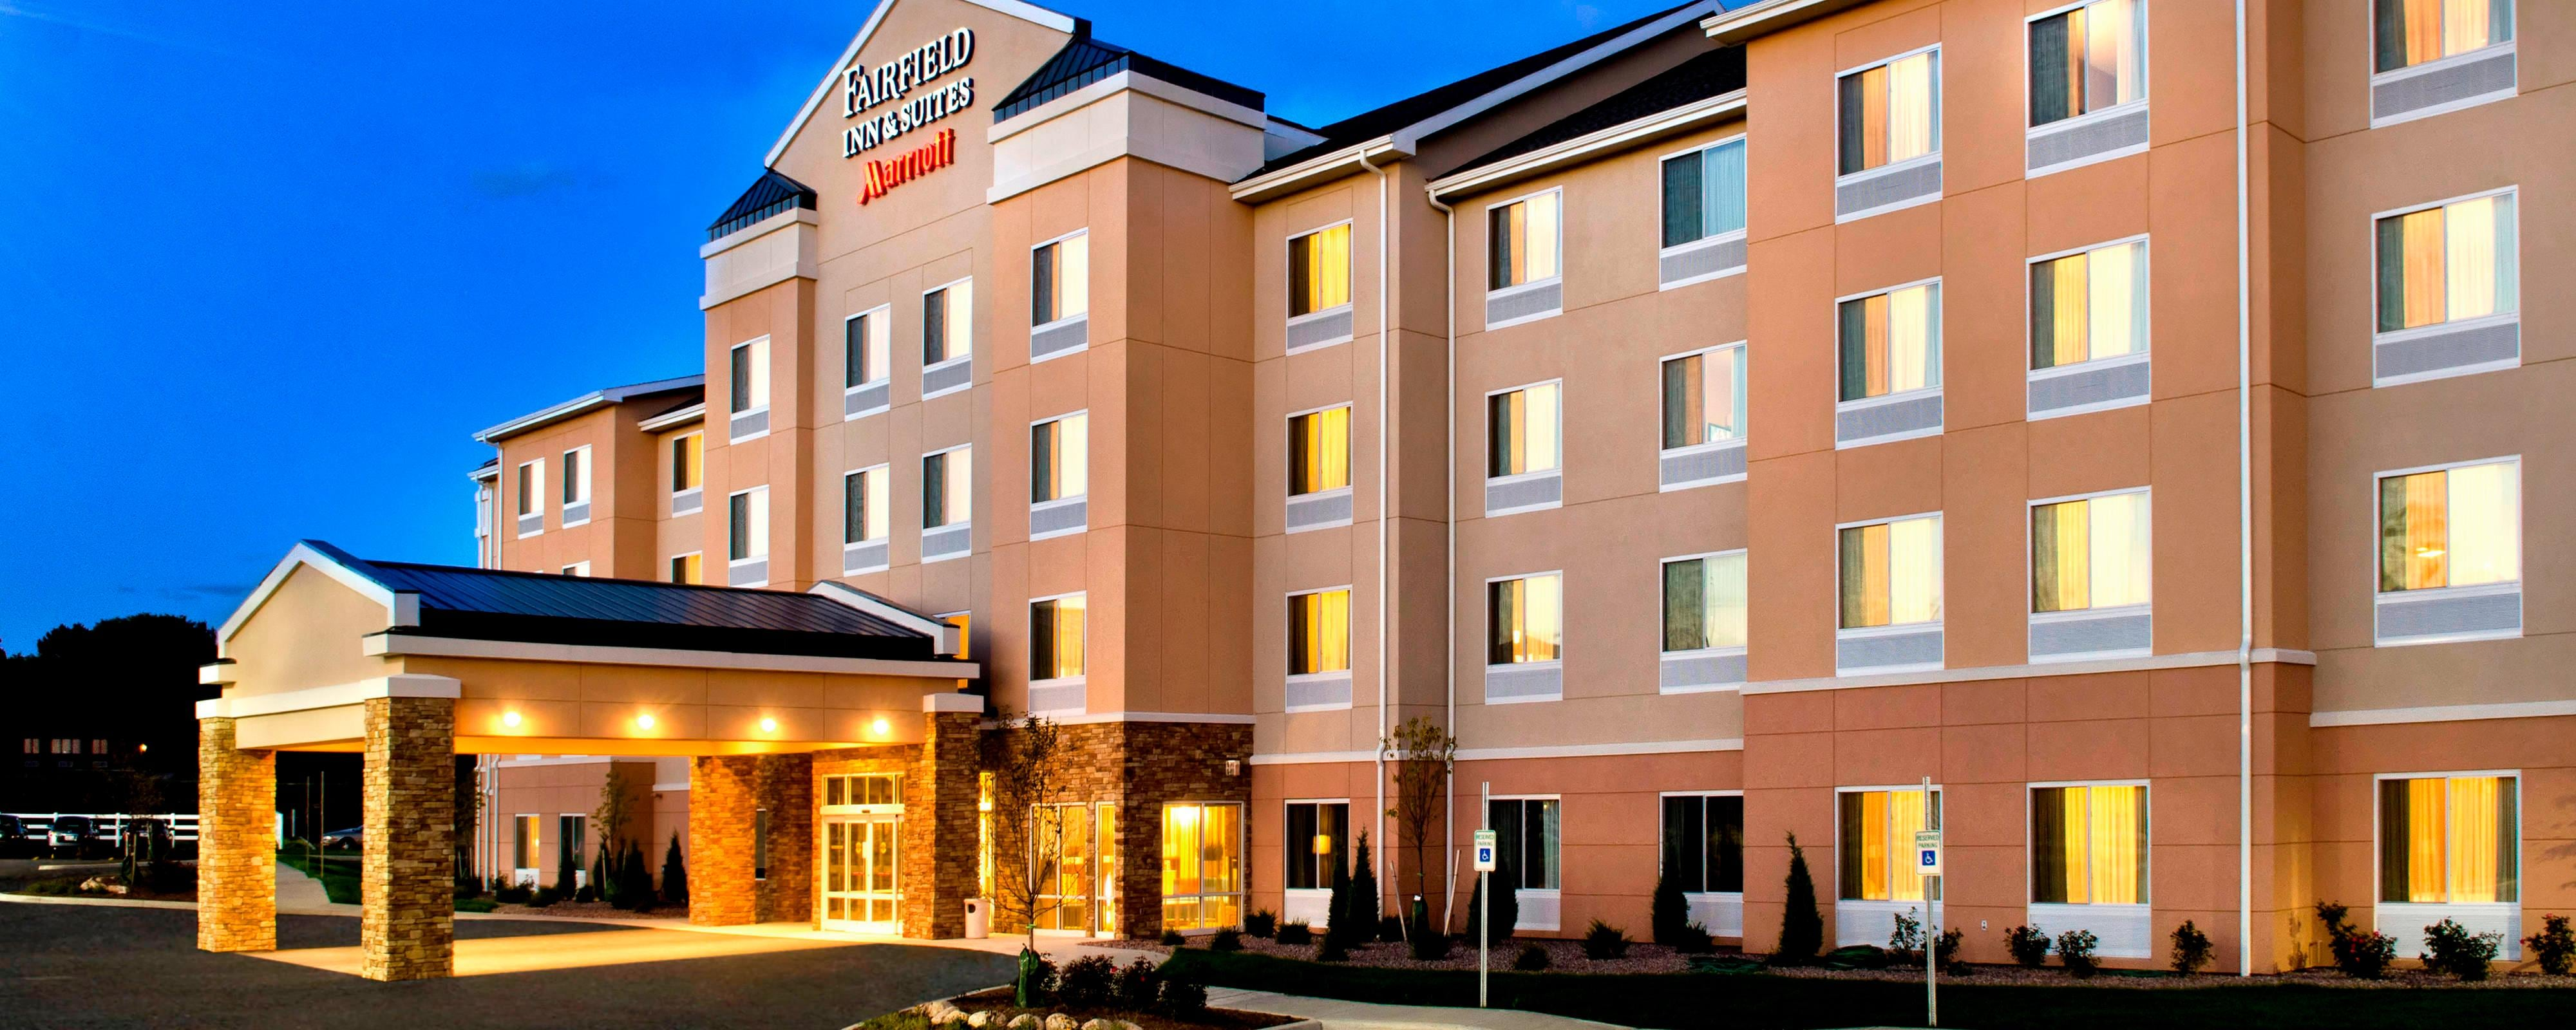 Hotel In Watertown, NY, with Free Wi-Fi | Fairfield Inn & Suites